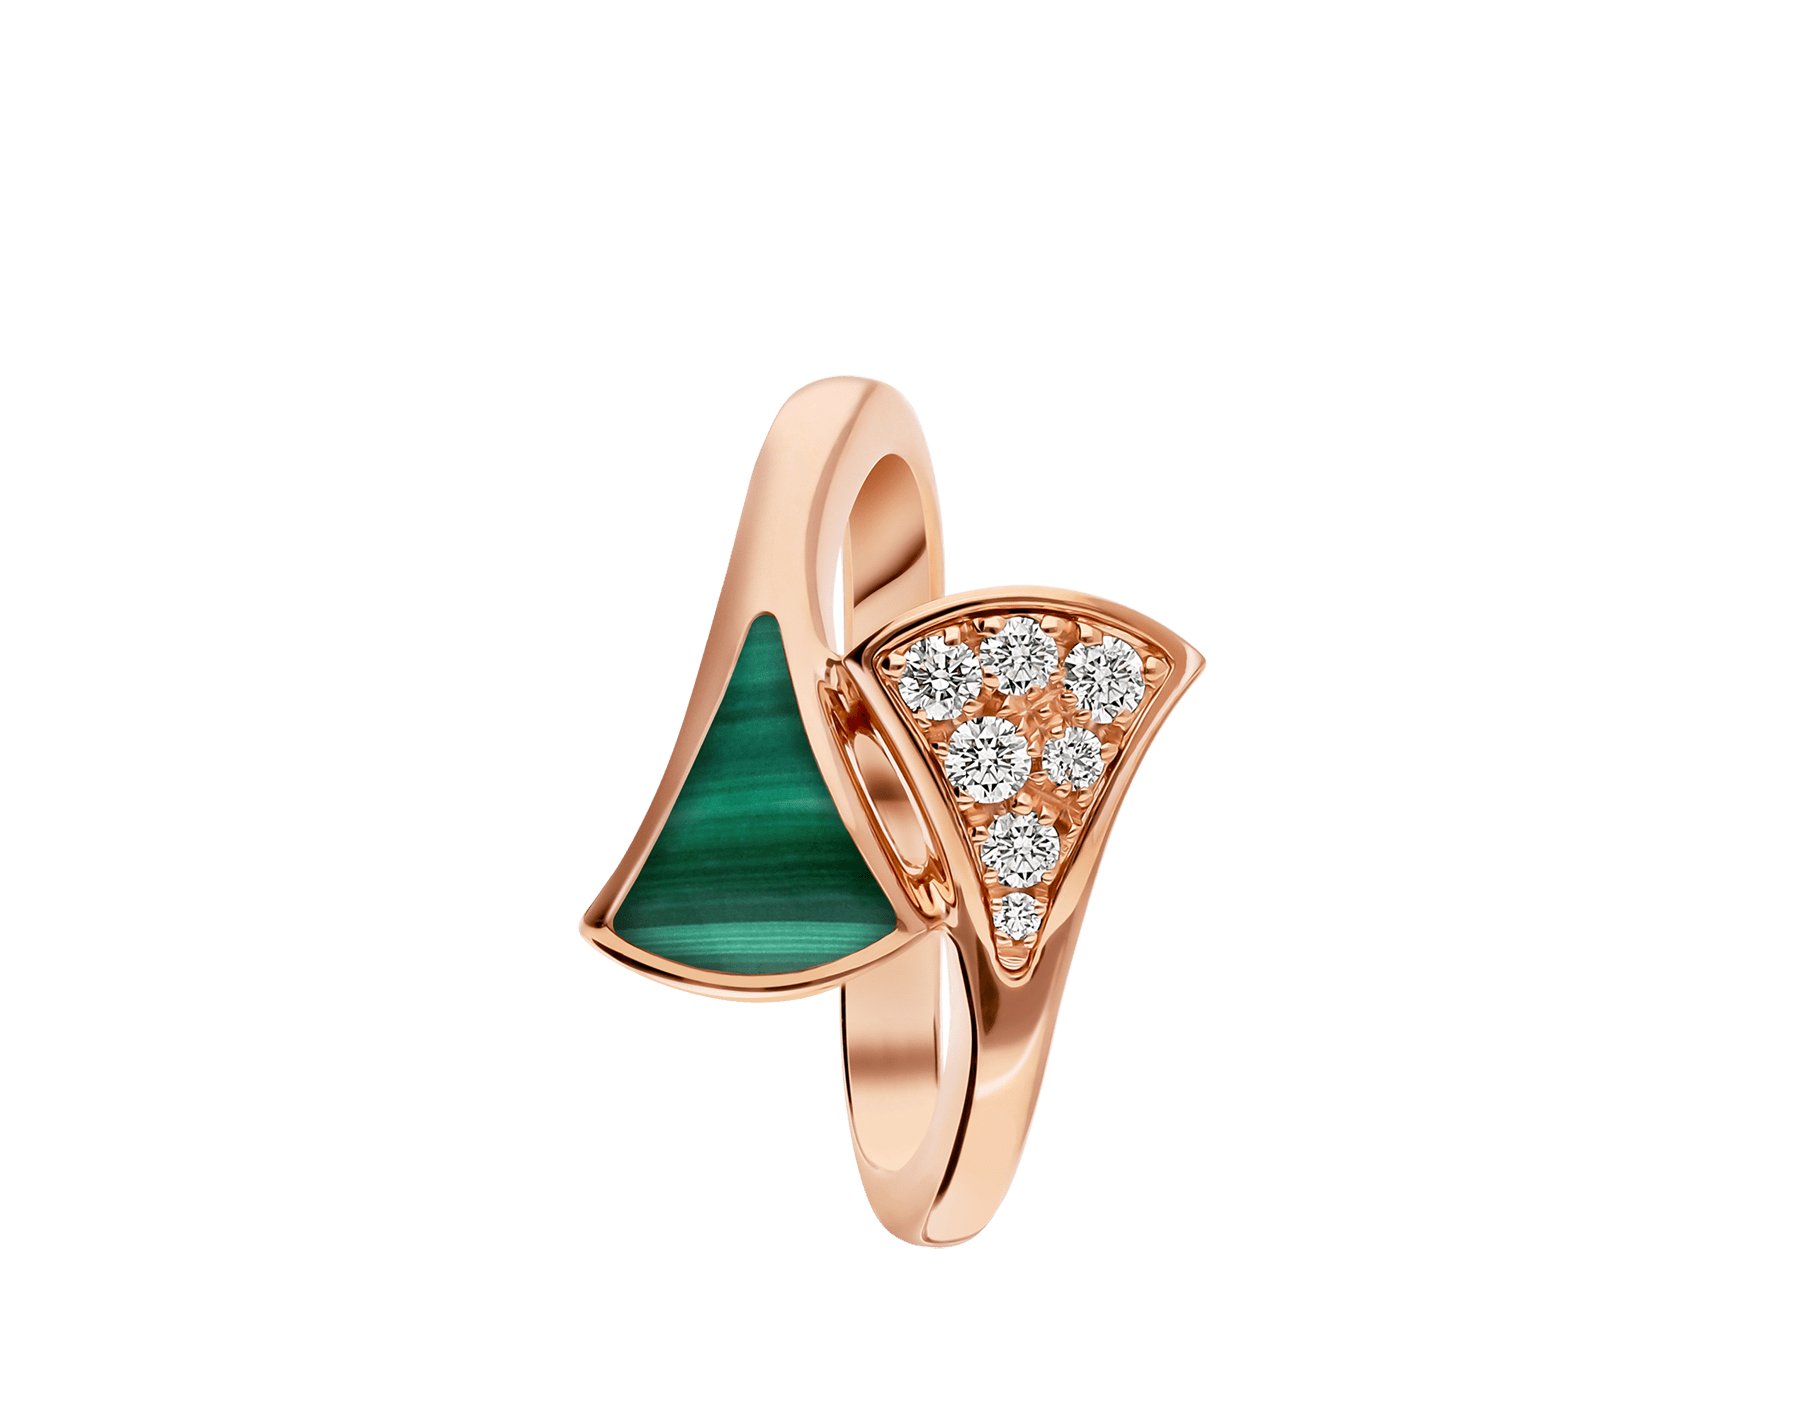 DIVAS' DREAM 18 kt rose gold ring set with malachite element and pavé diamonds (0.10 ct) AN858646 image 2